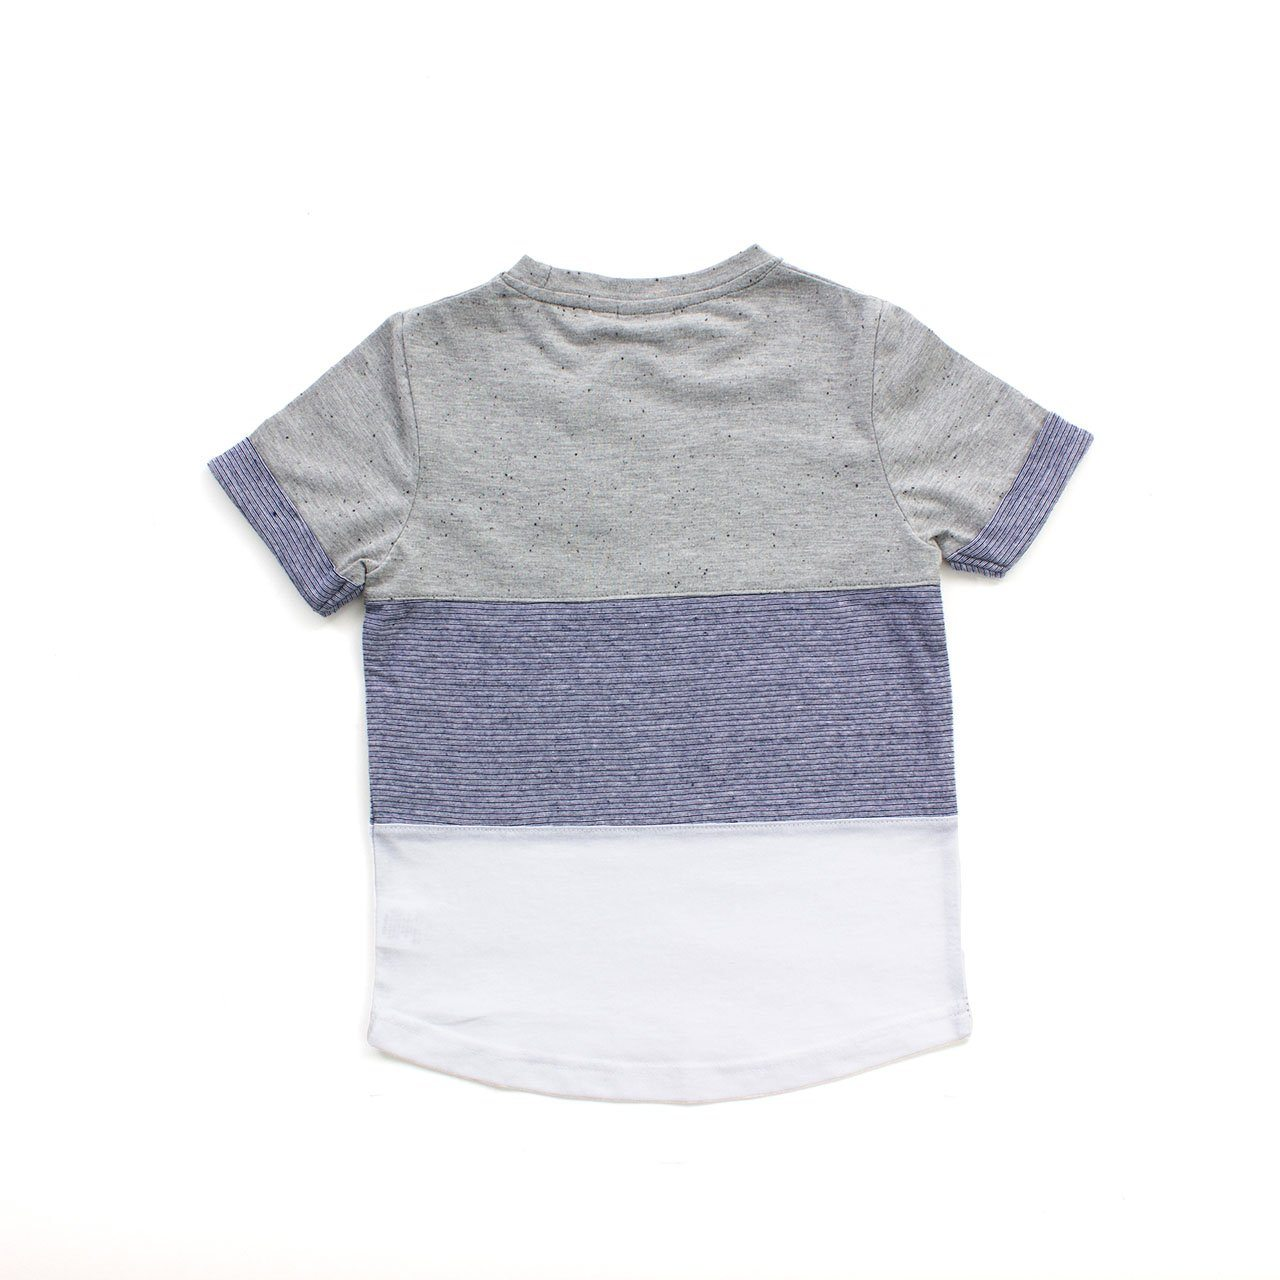 Toddler, Short Sleeve Tee - Andres Tee Toddler